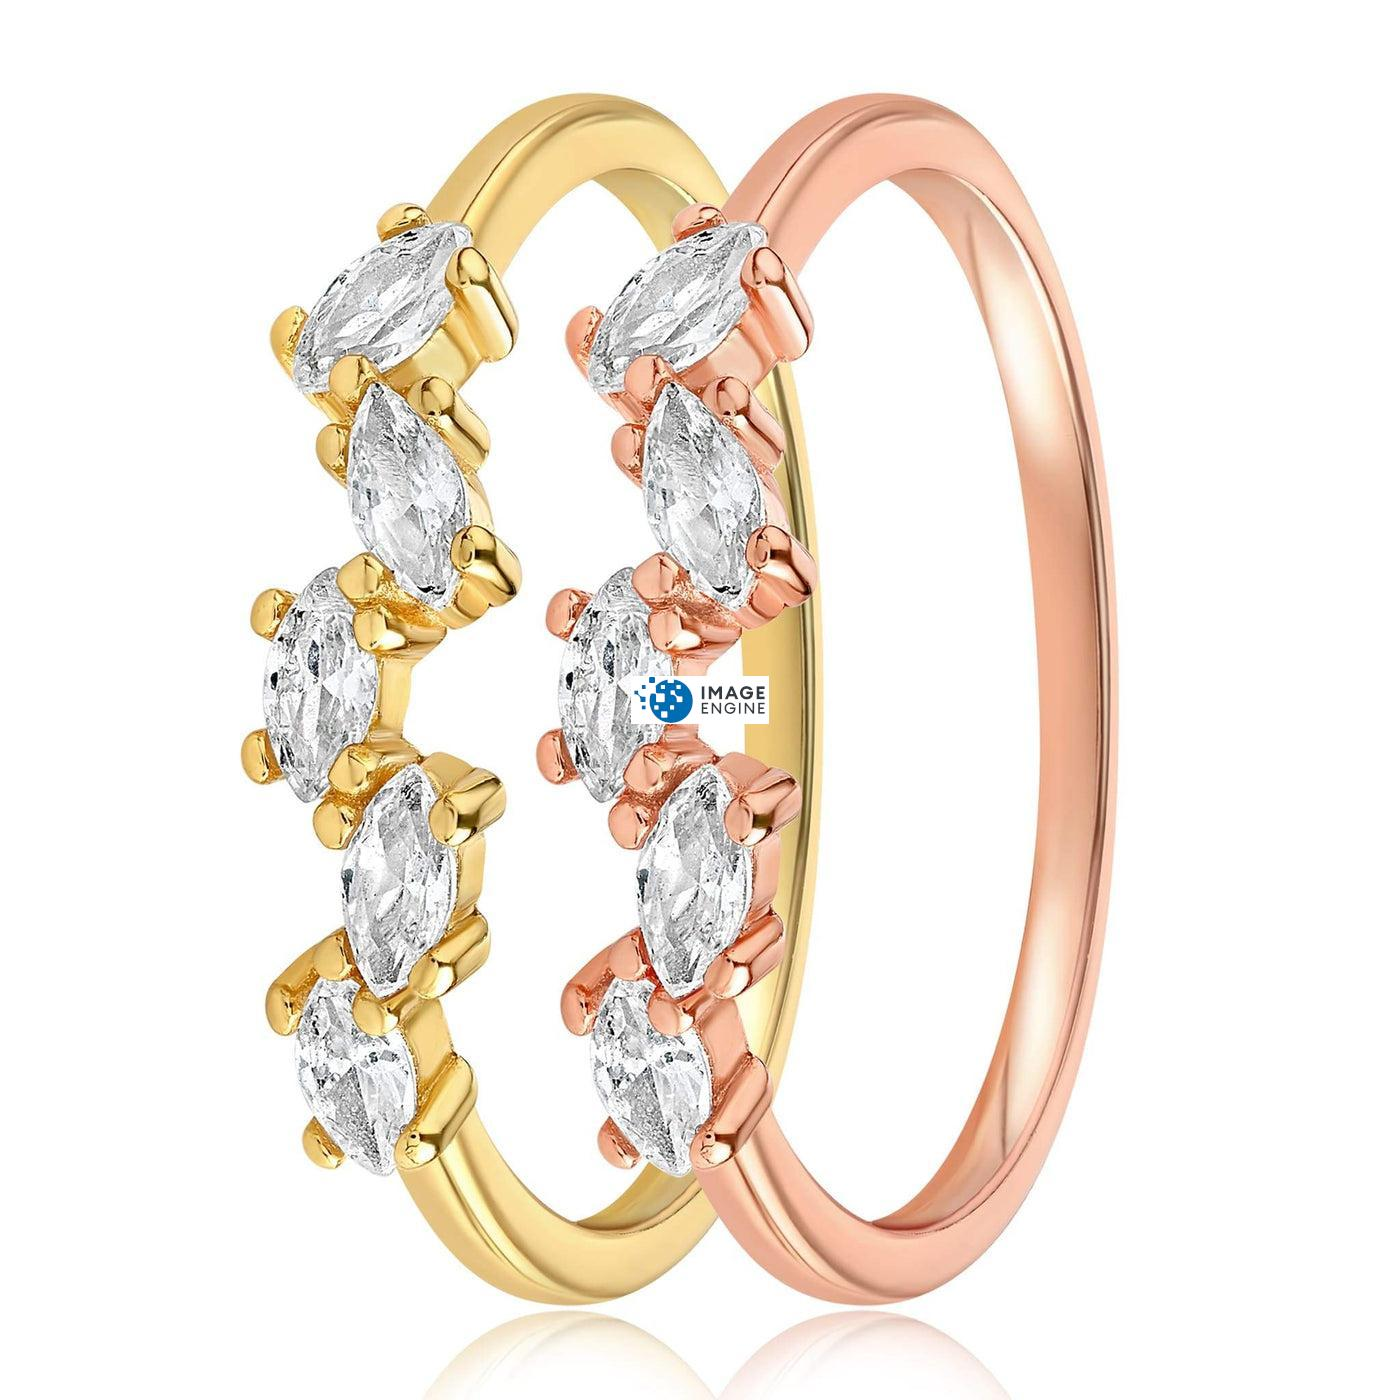 Genna Round Cut Ring - Side by Side - 18K Yellow Gold Vermeil and 18K Rose Gold Vermeil